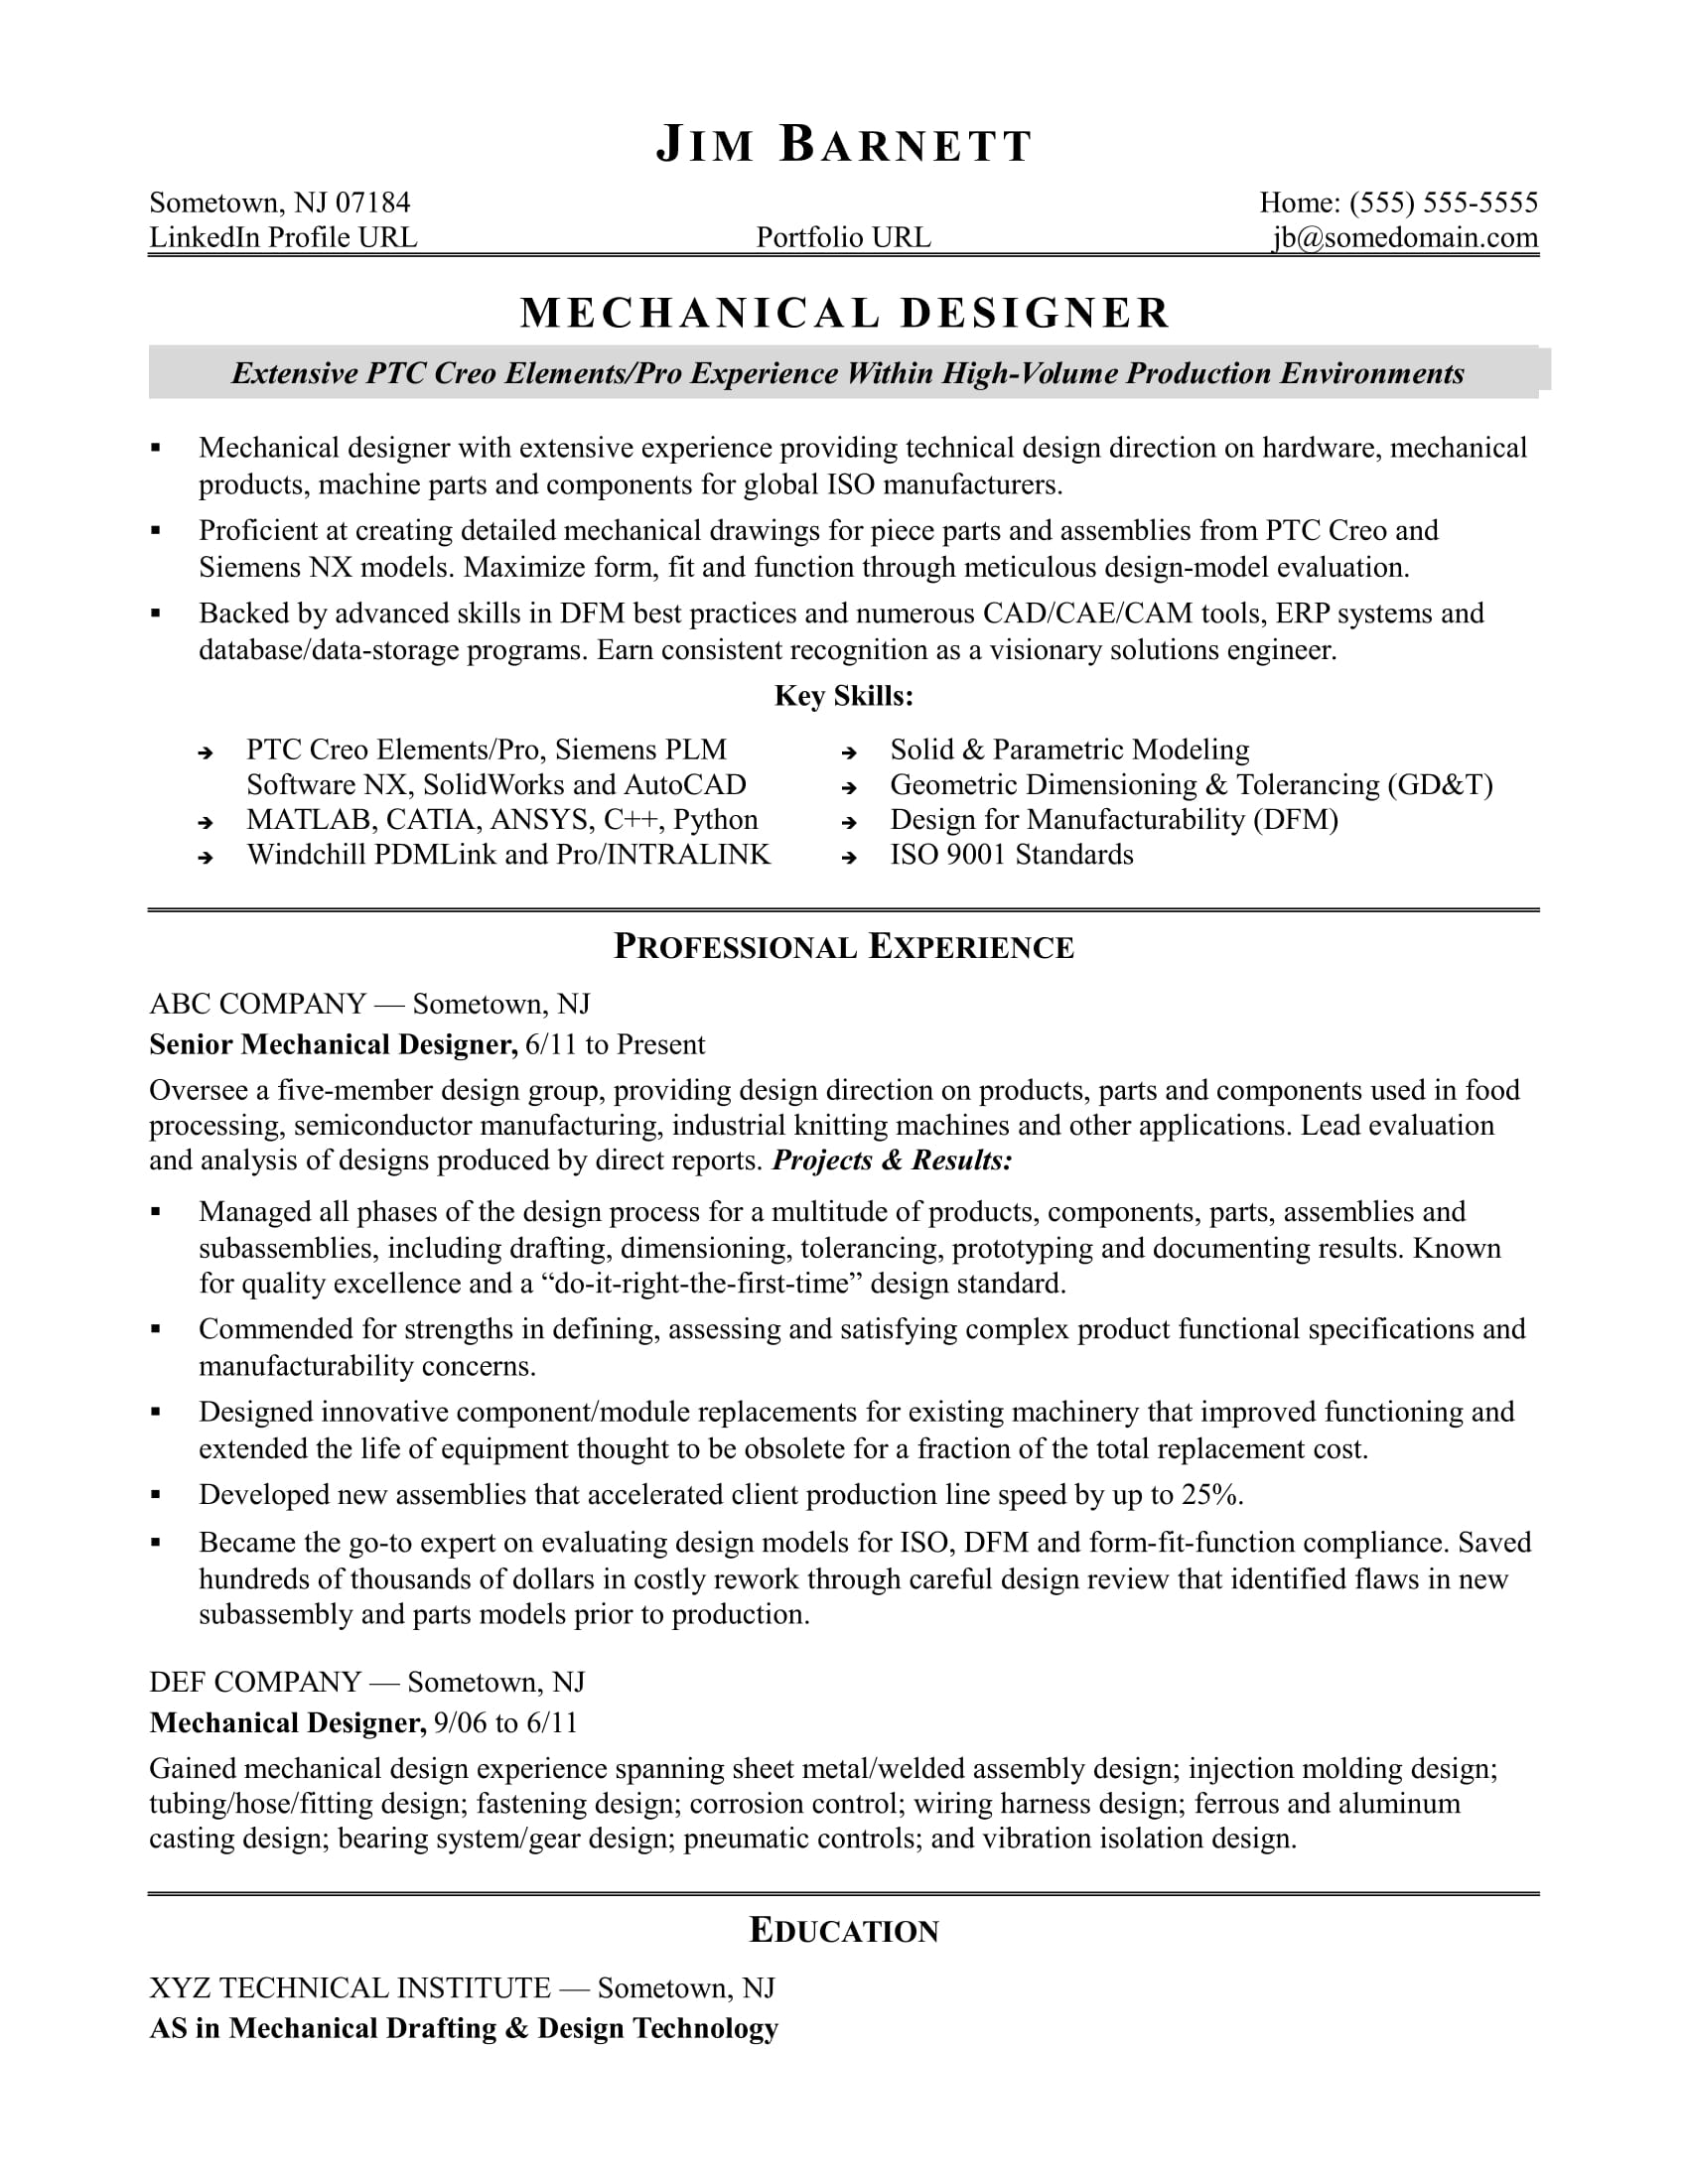 sample resume for an experienced mechanical designer monster good experience examples Resume Good Resume Experience Examples